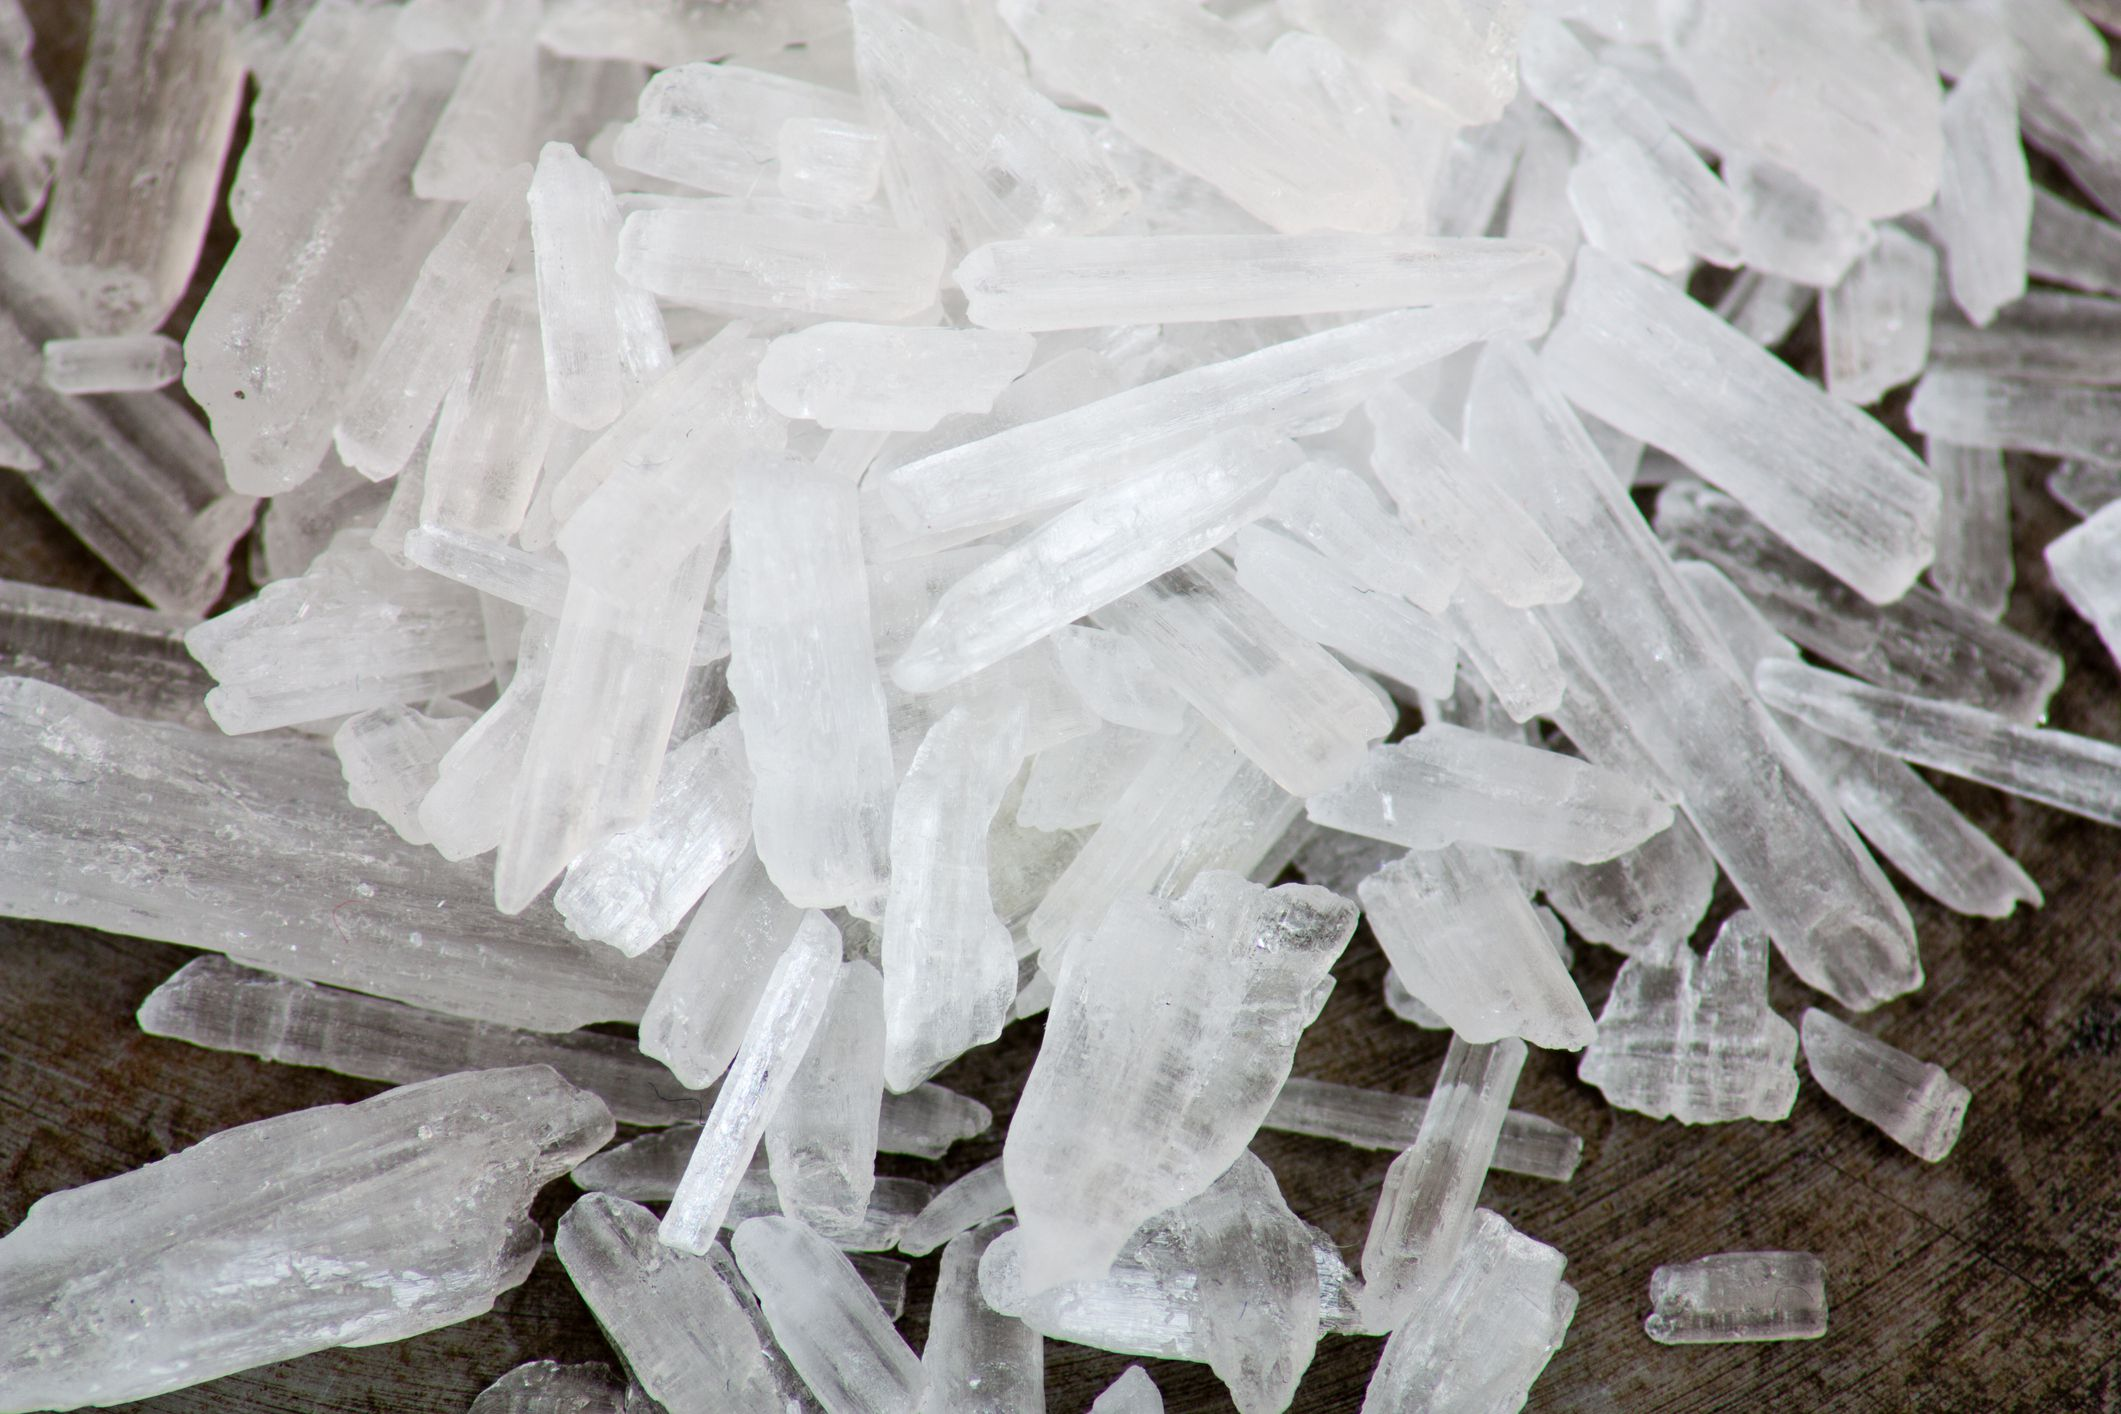 Methamphetamine: Myths, Effects, Risks, and How to Get Help